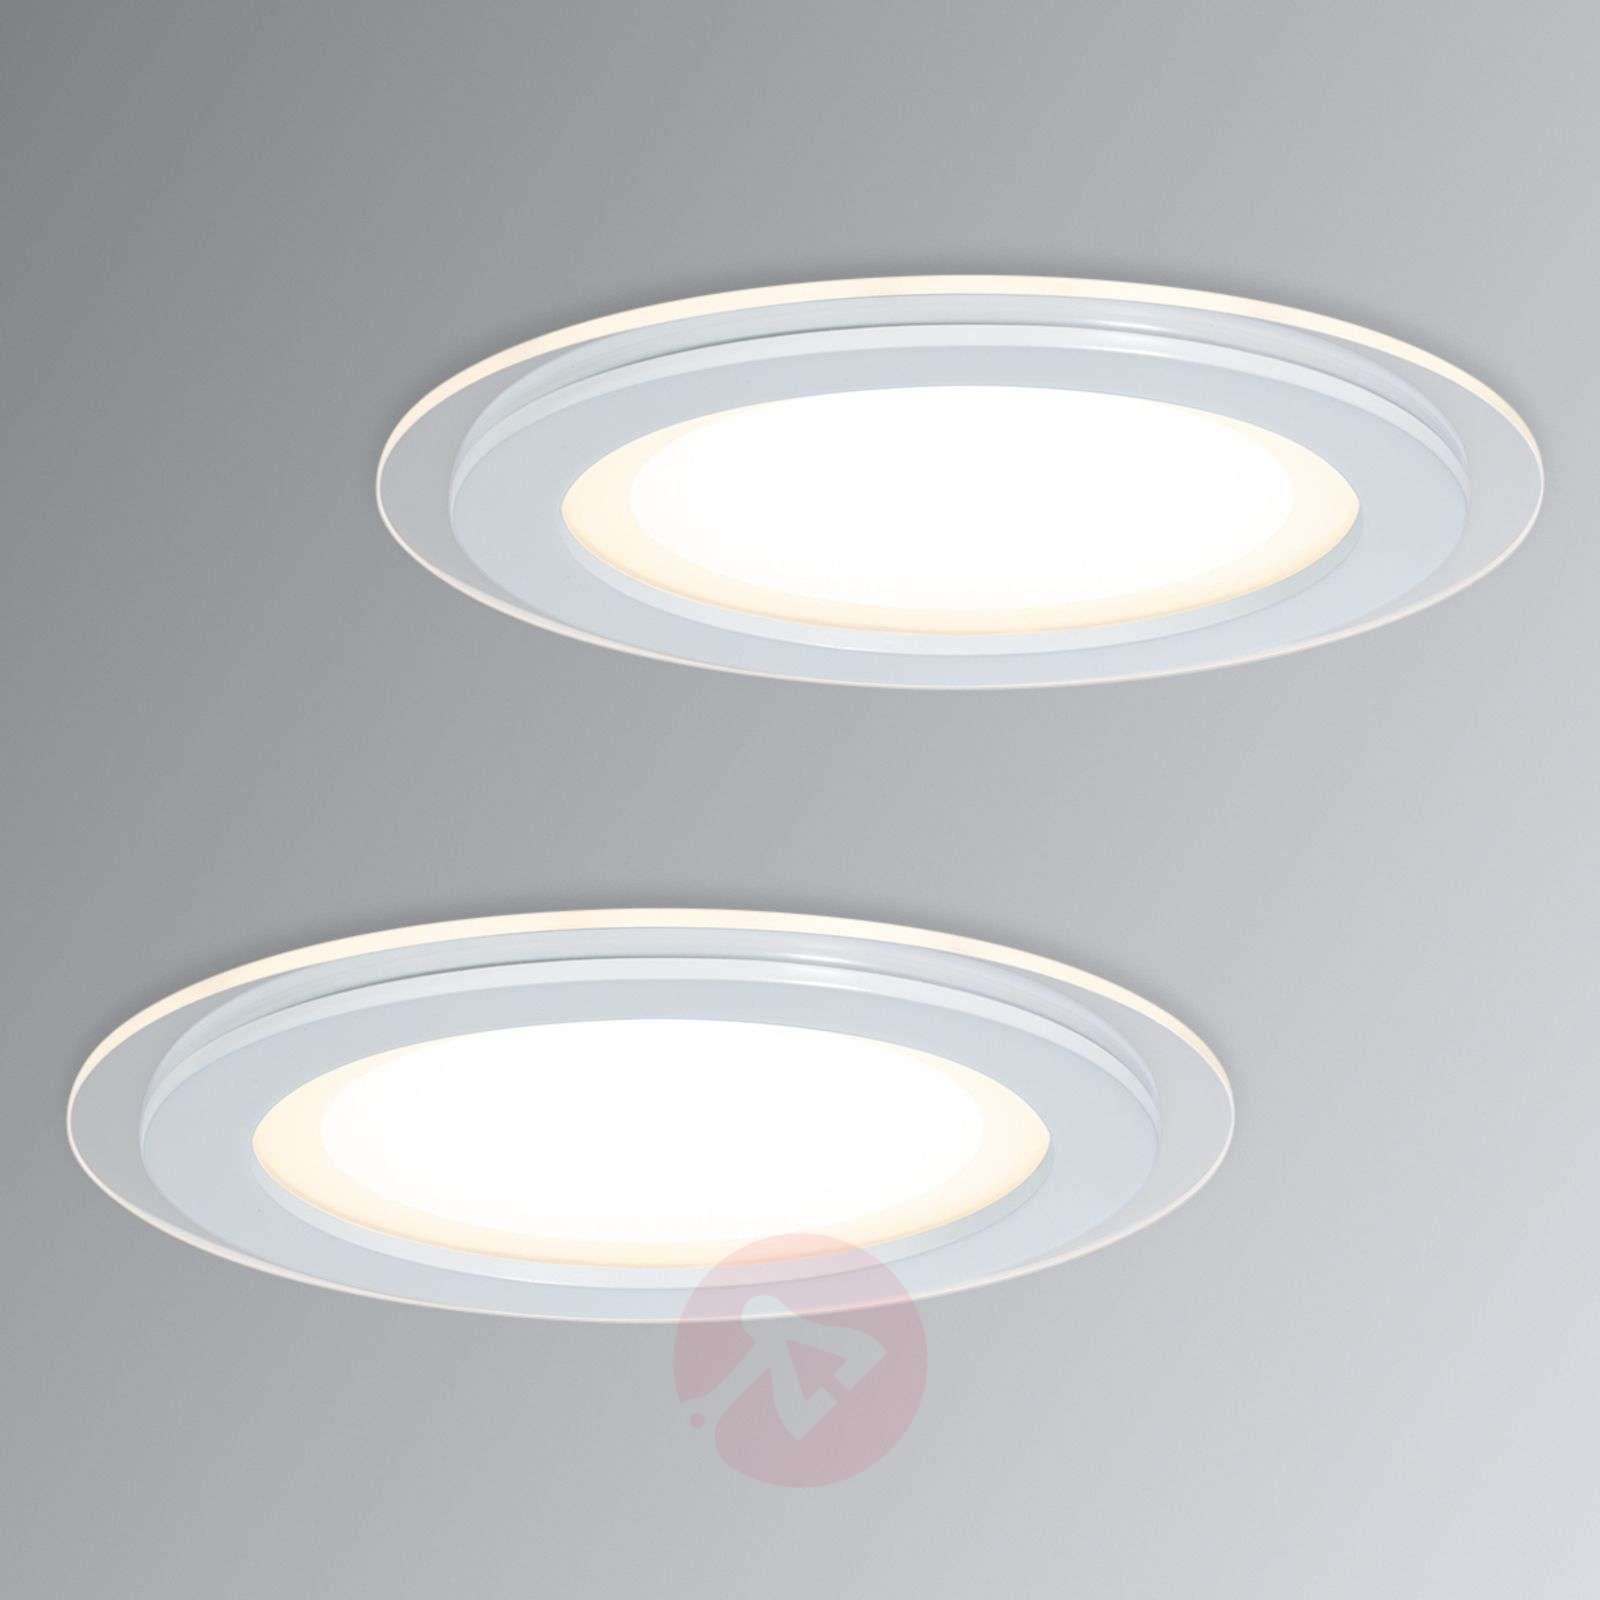 Premium Line Decodot Led Recessed Lights Set Of 2